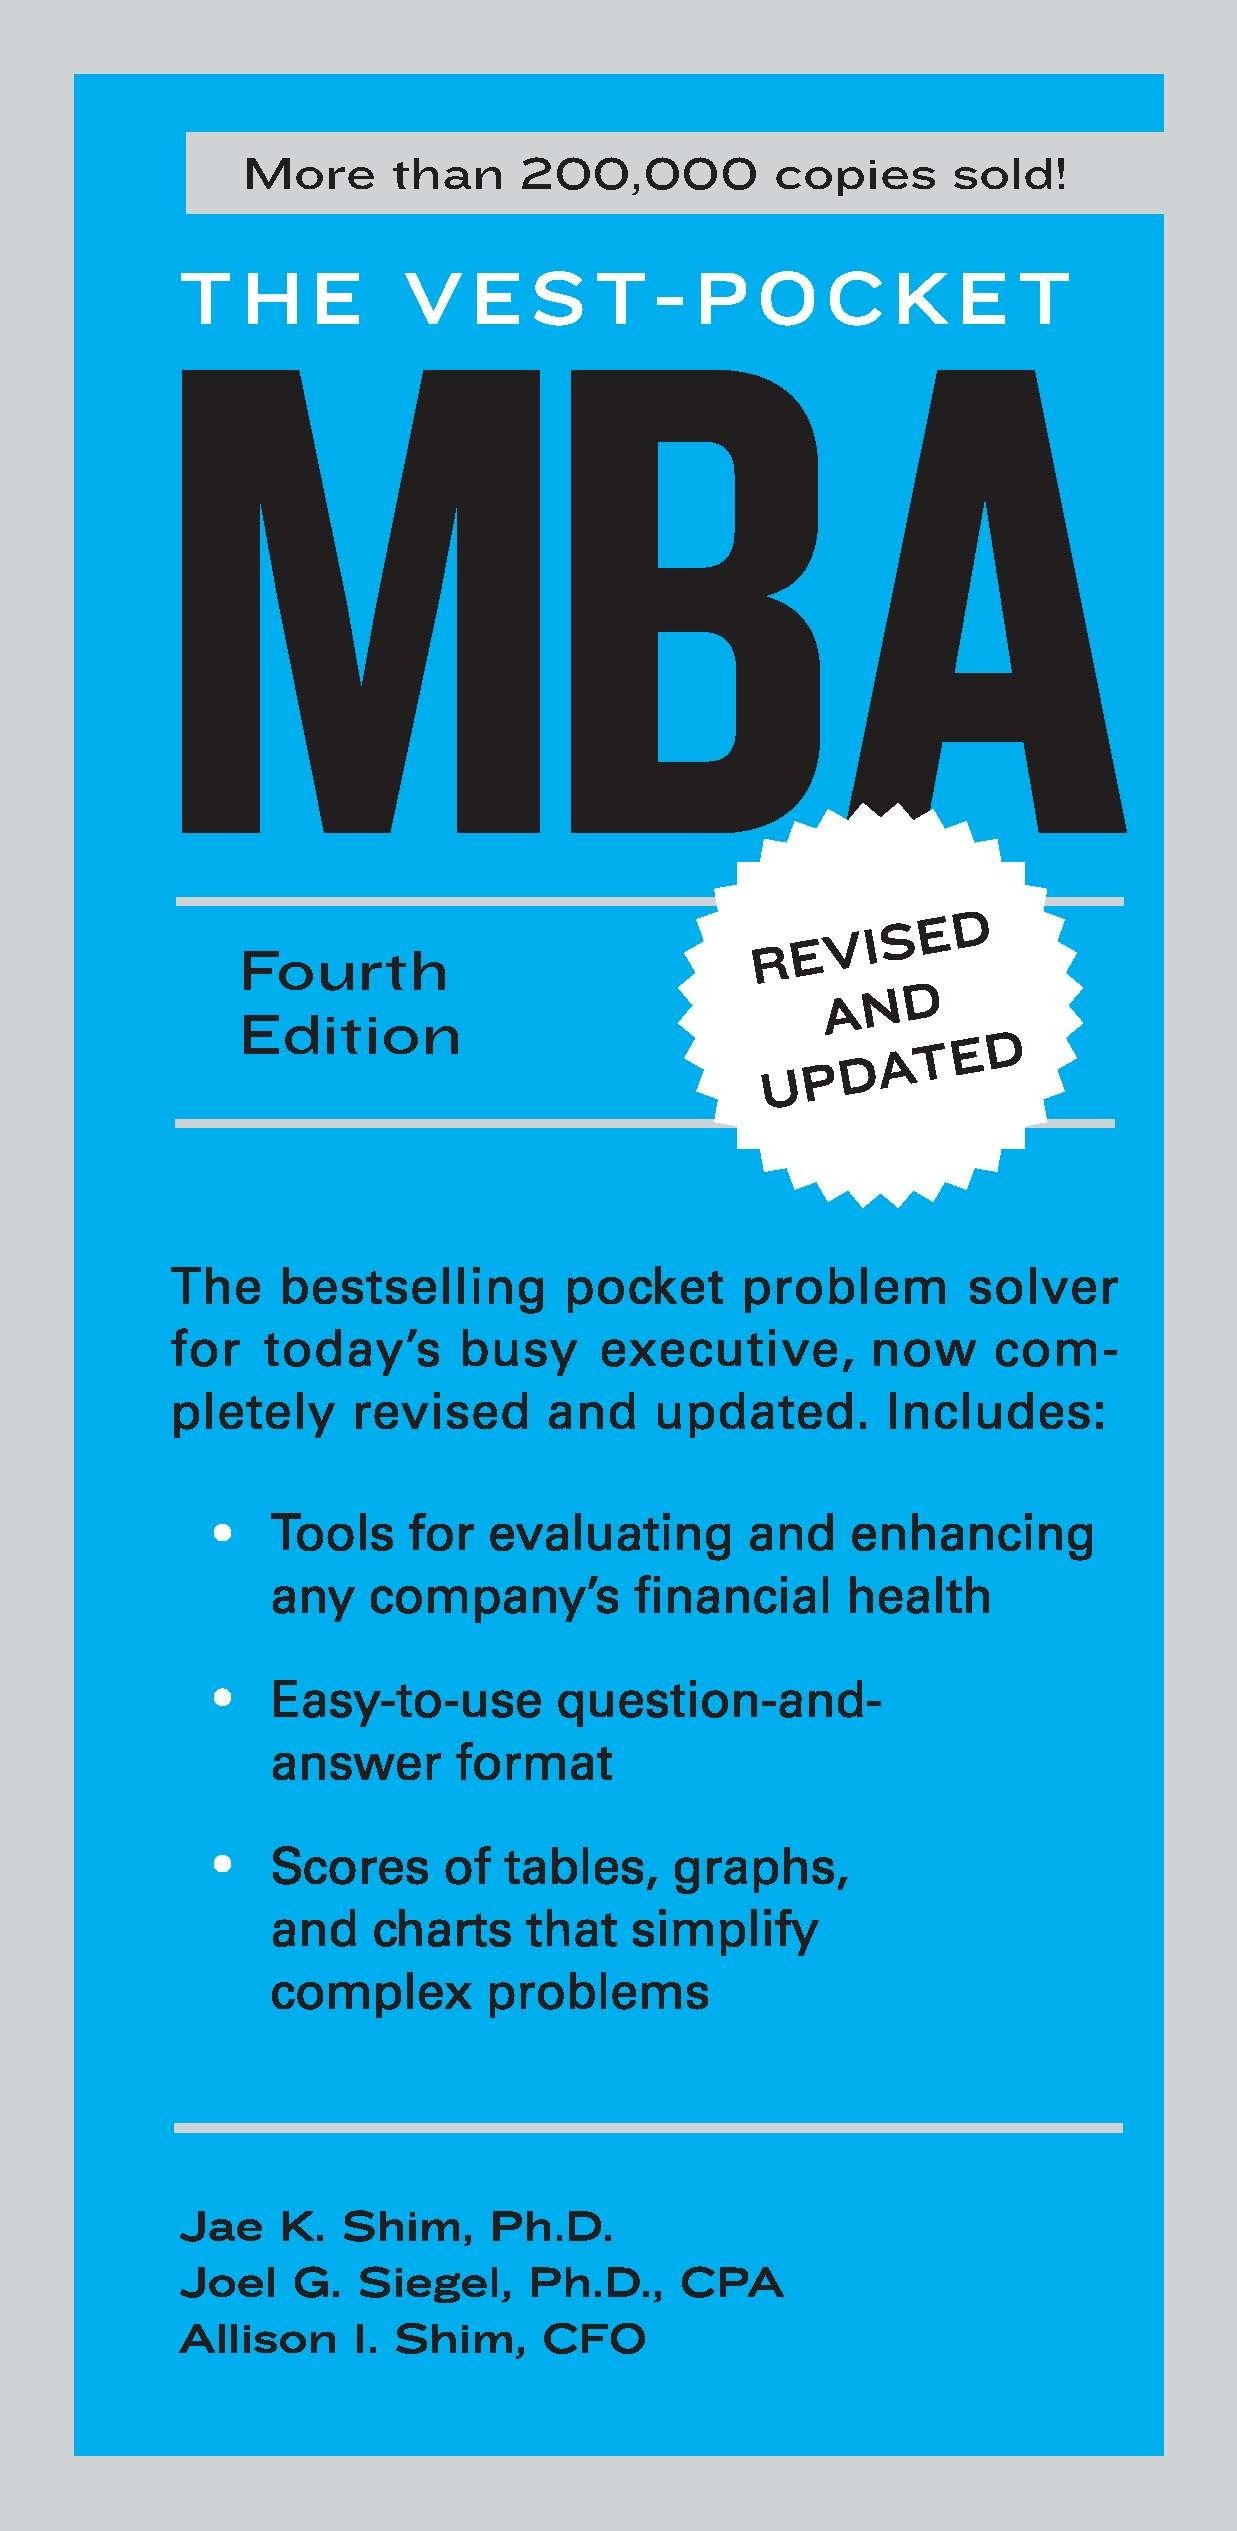 The vest pocket mba fourth edition jae k shim joel g siegel the vest pocket mba fourth edition jae k shim joel g siegel allison i shim 9781591844334 amazon books fandeluxe Image collections